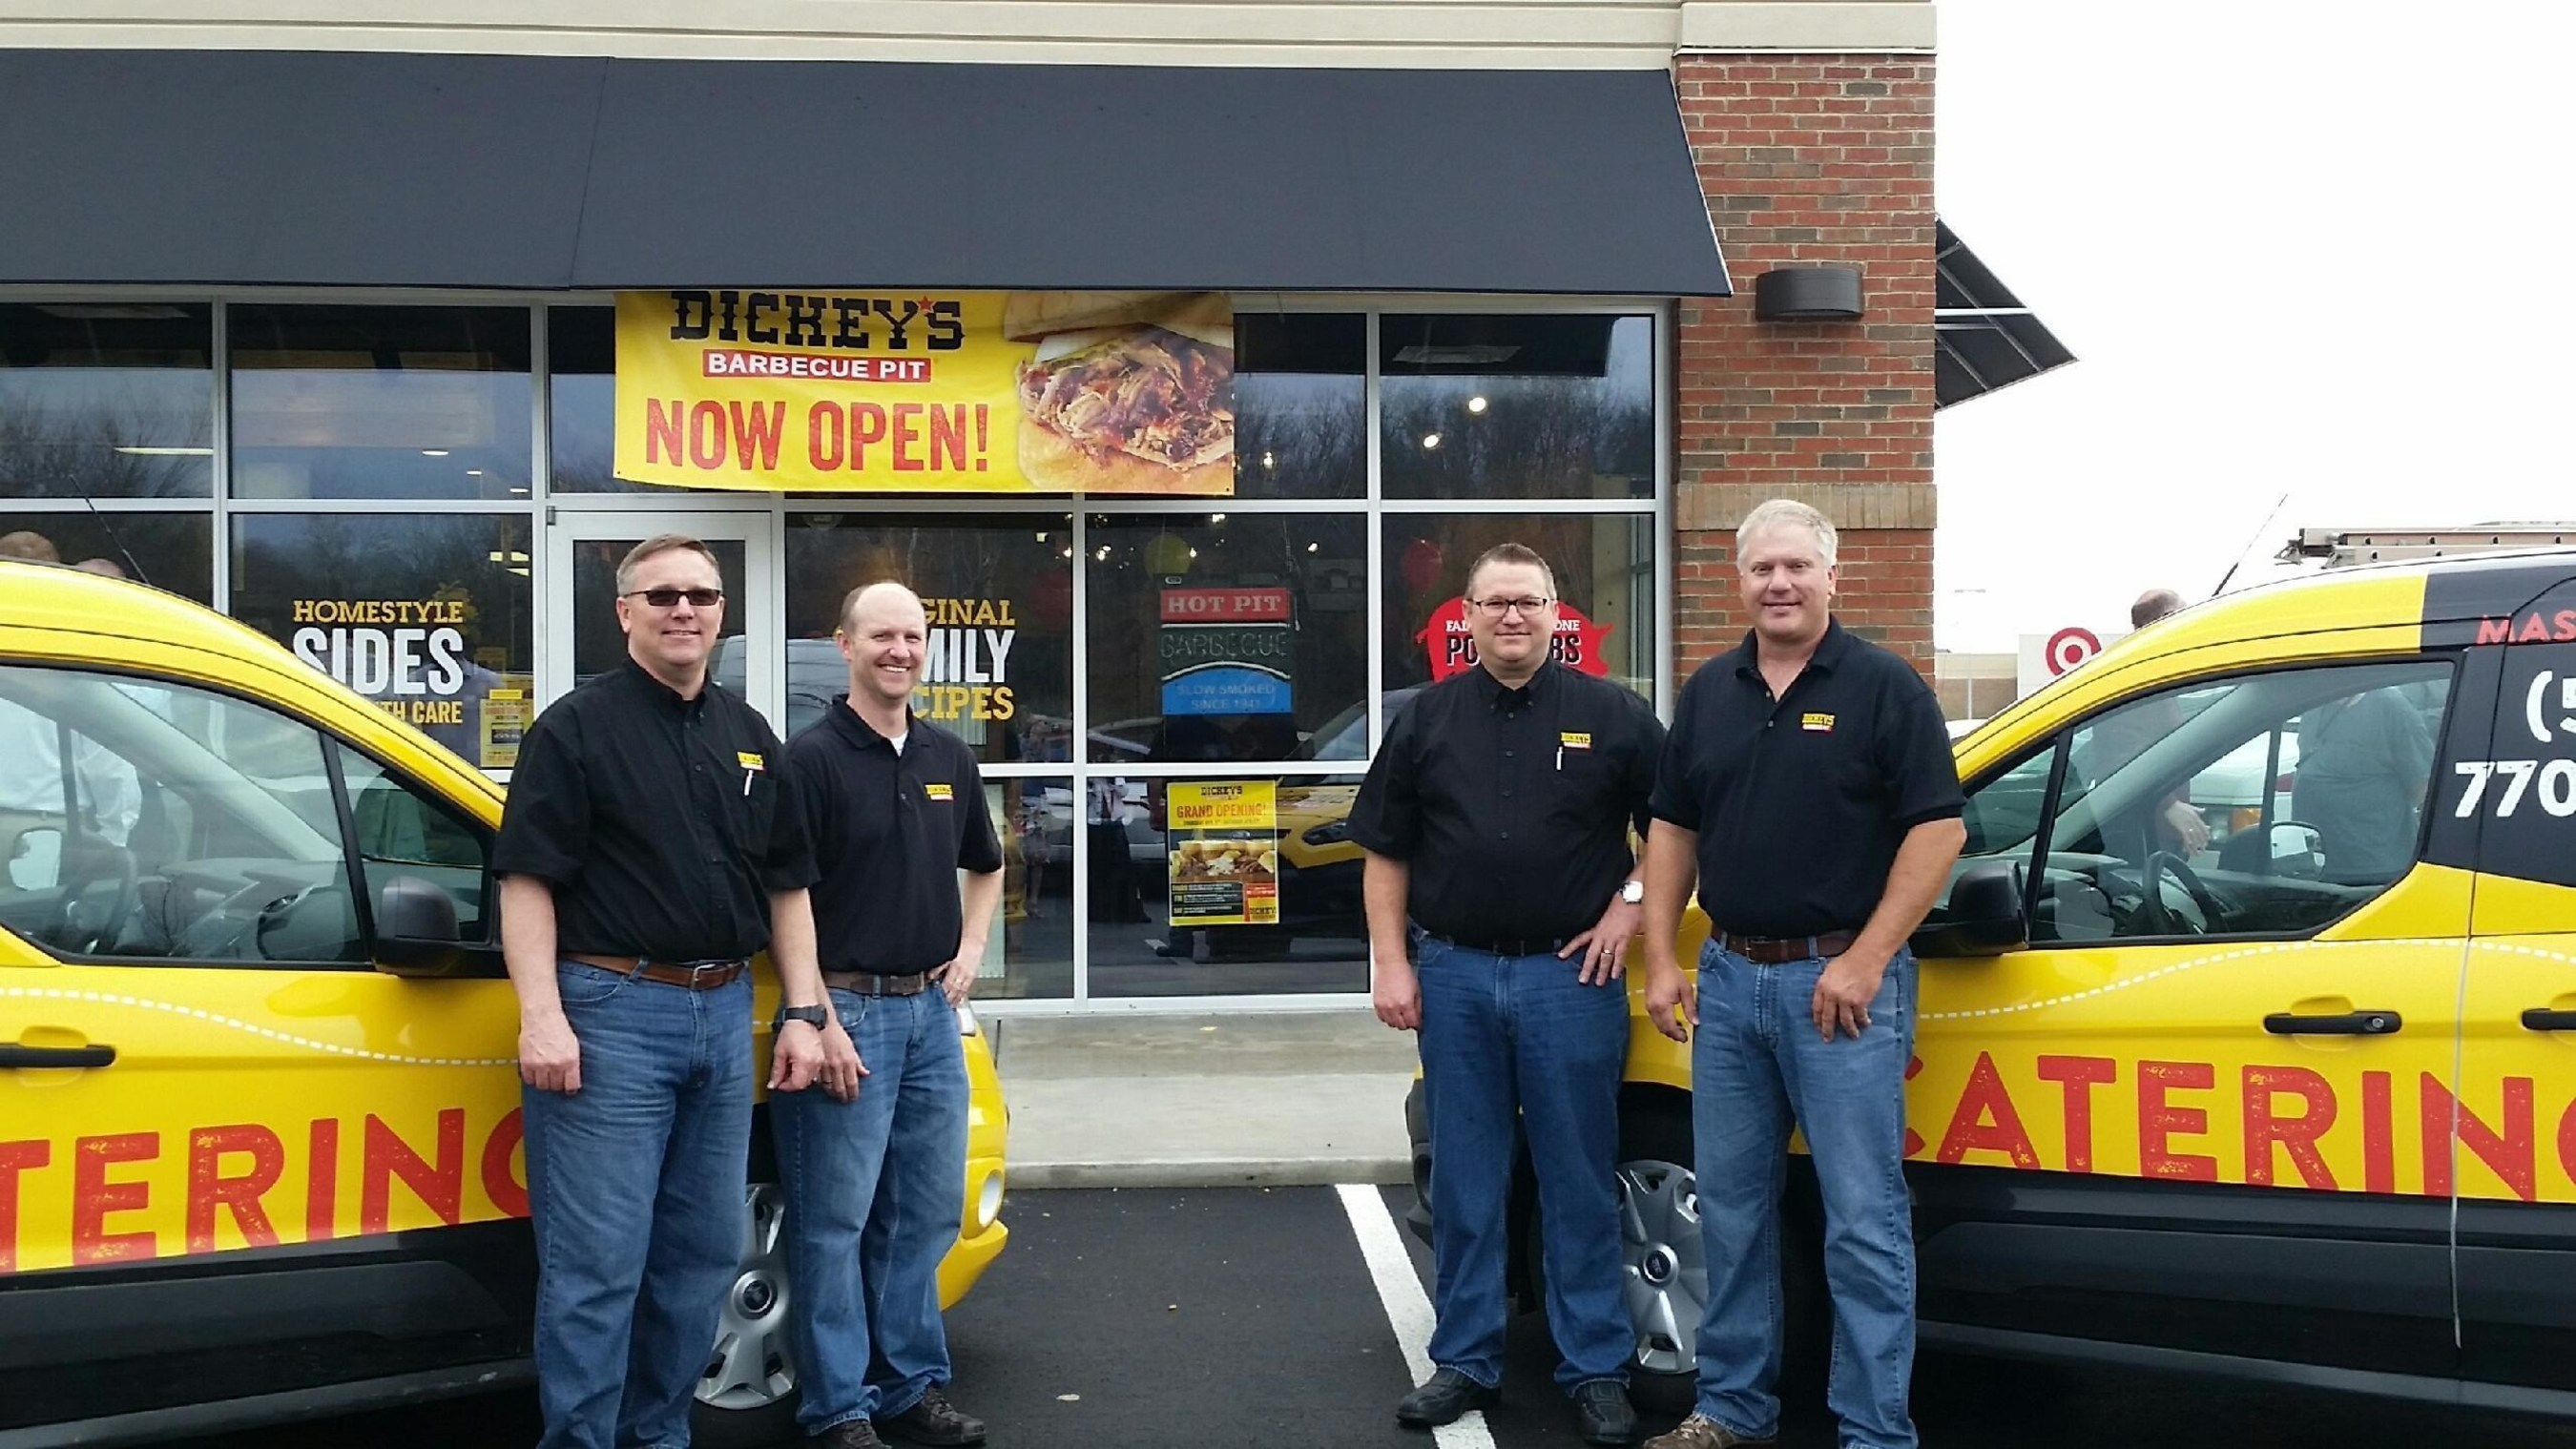 Dickey's Barbecue Pit in Mason opens Thursday with three day grand opening bash.